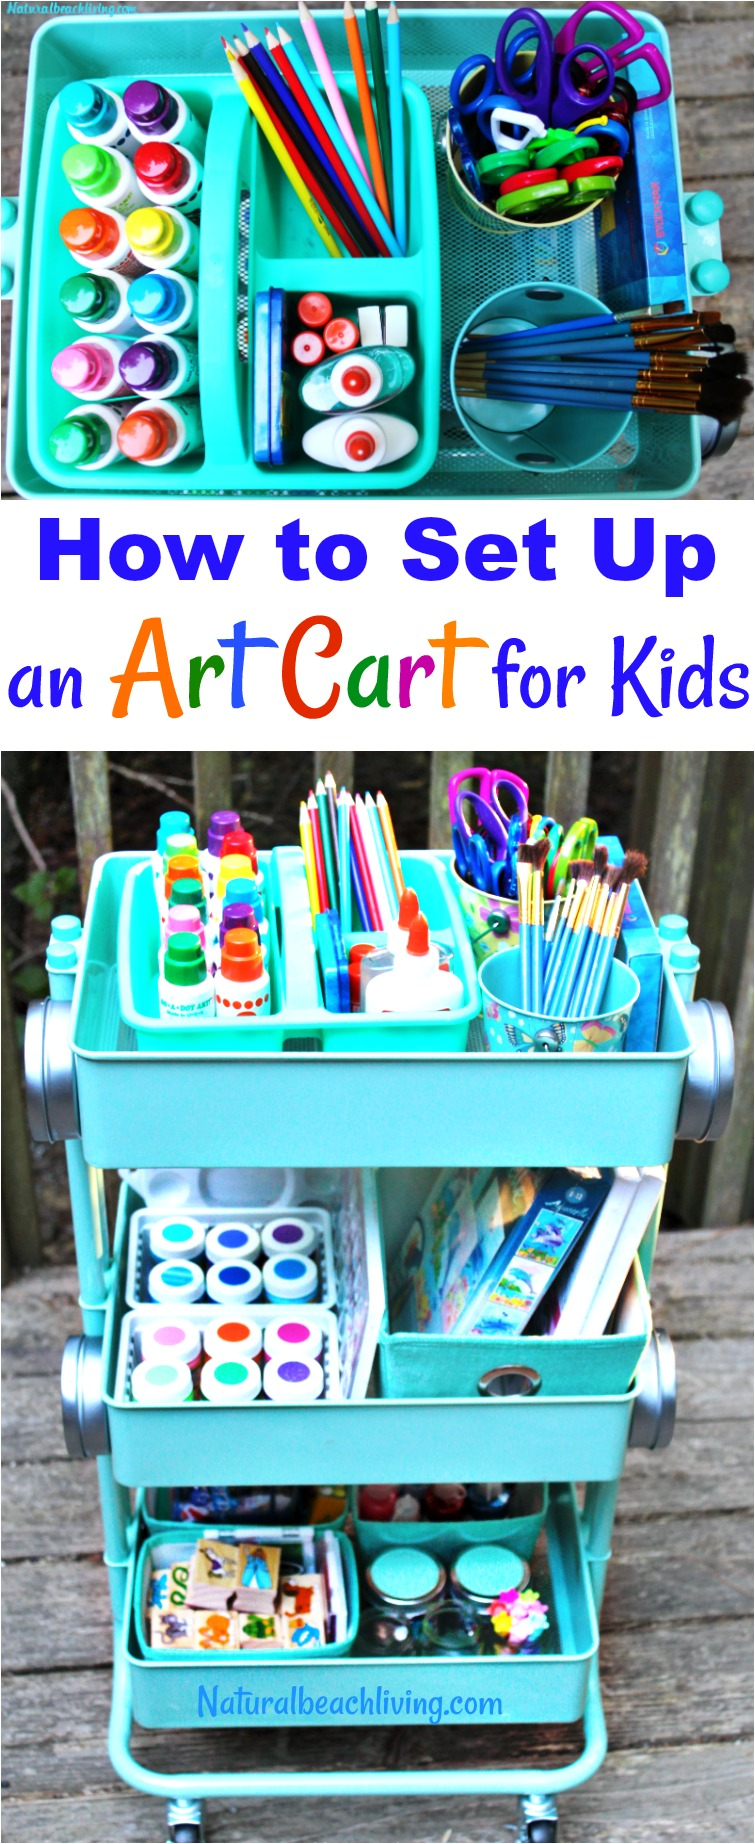 How to set up an art cart for kids